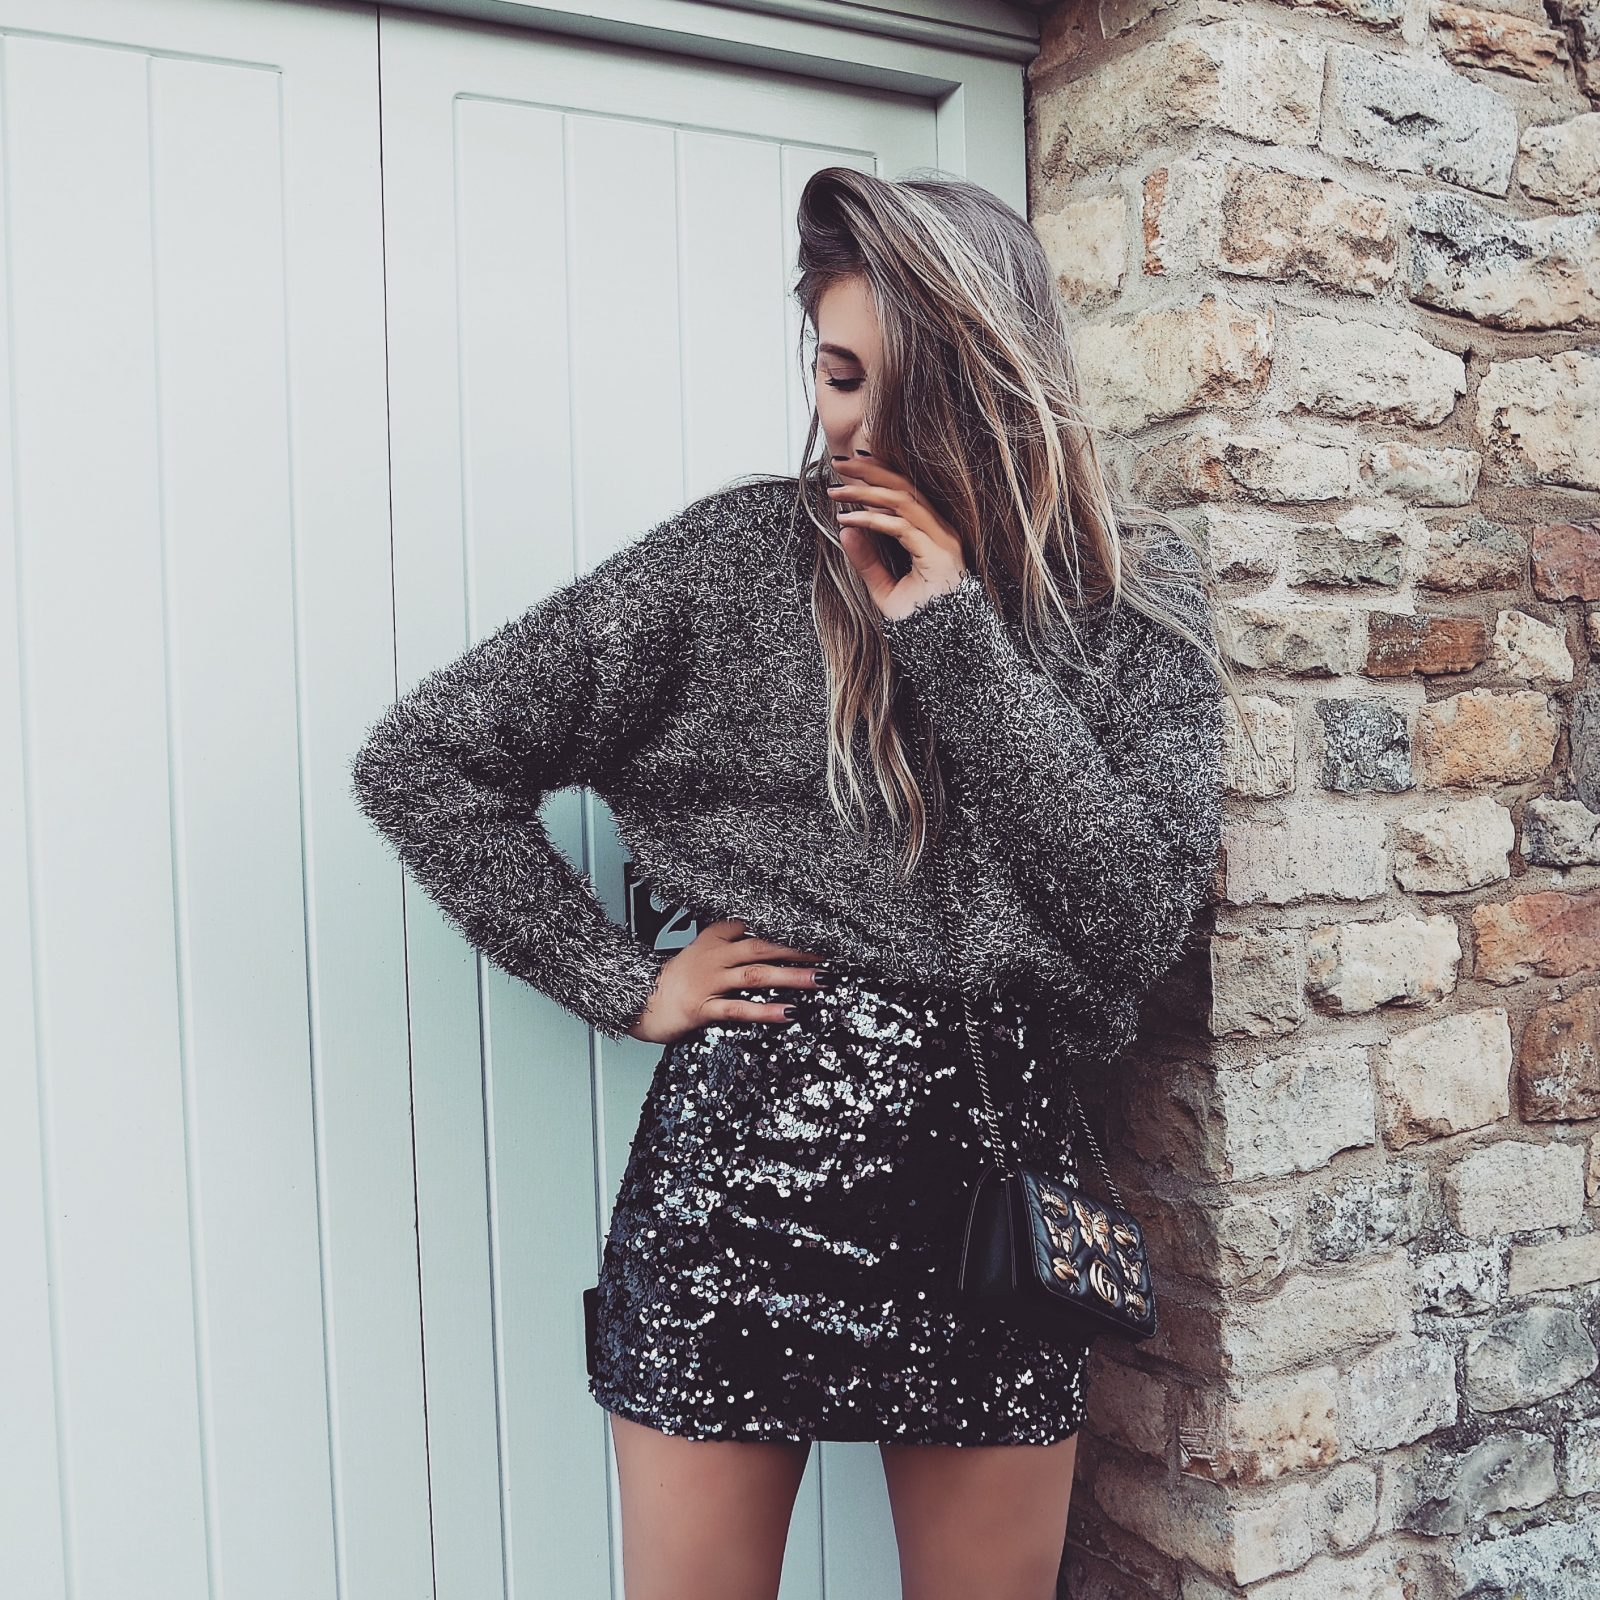 Christmas Party Outfit Ideas - Other Stories Outfit